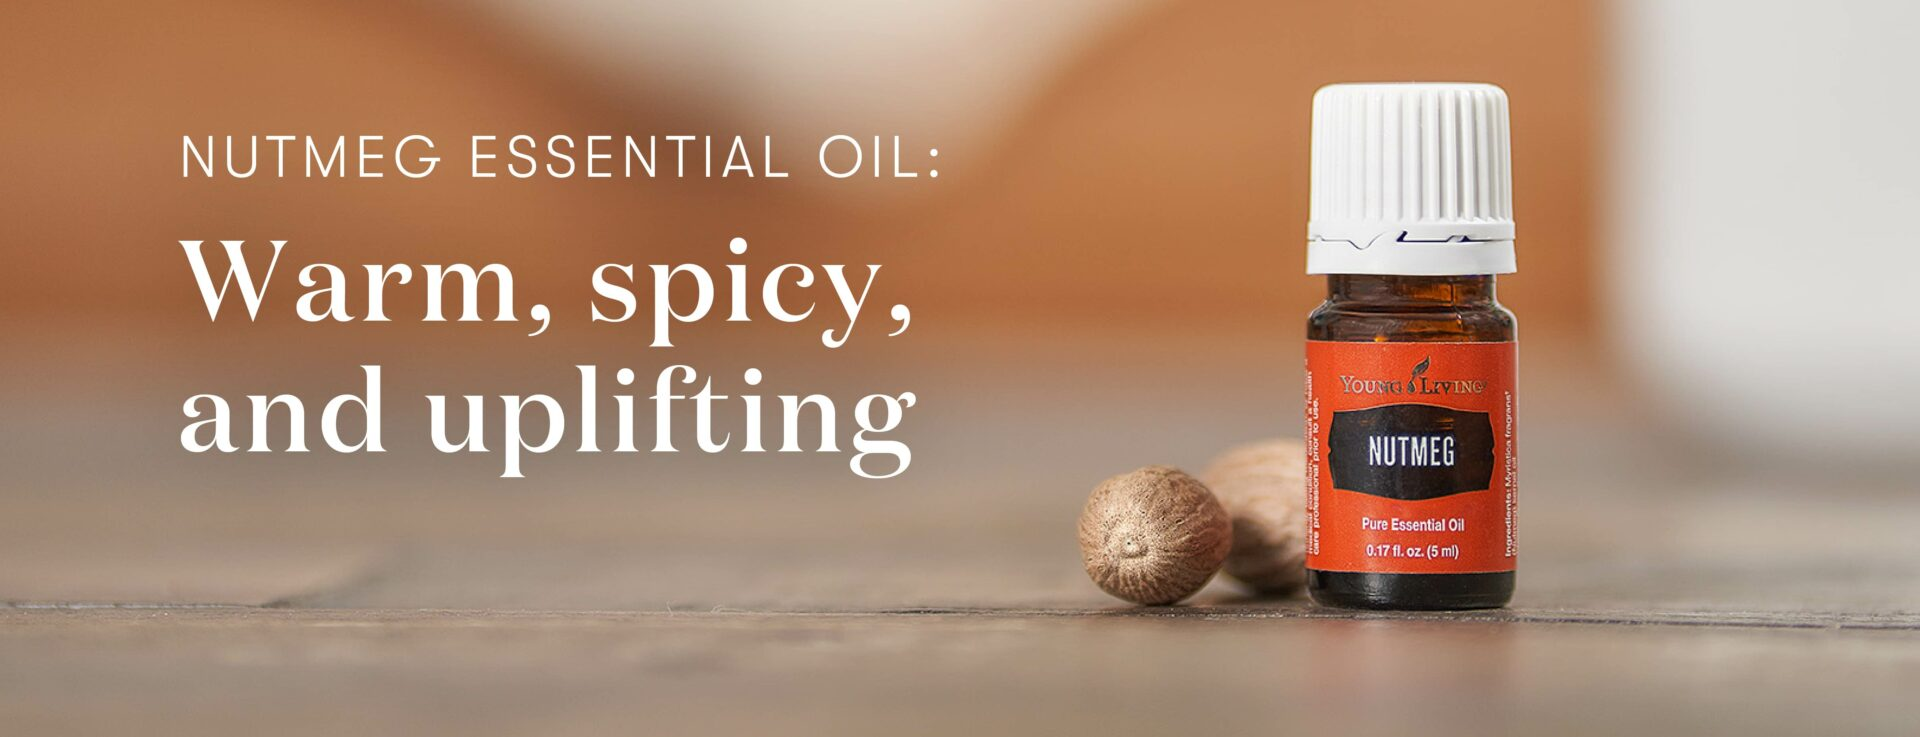 Nutmeg essential oil: Warm, spicy, and uplifting - Young Living Lavender Life Blog